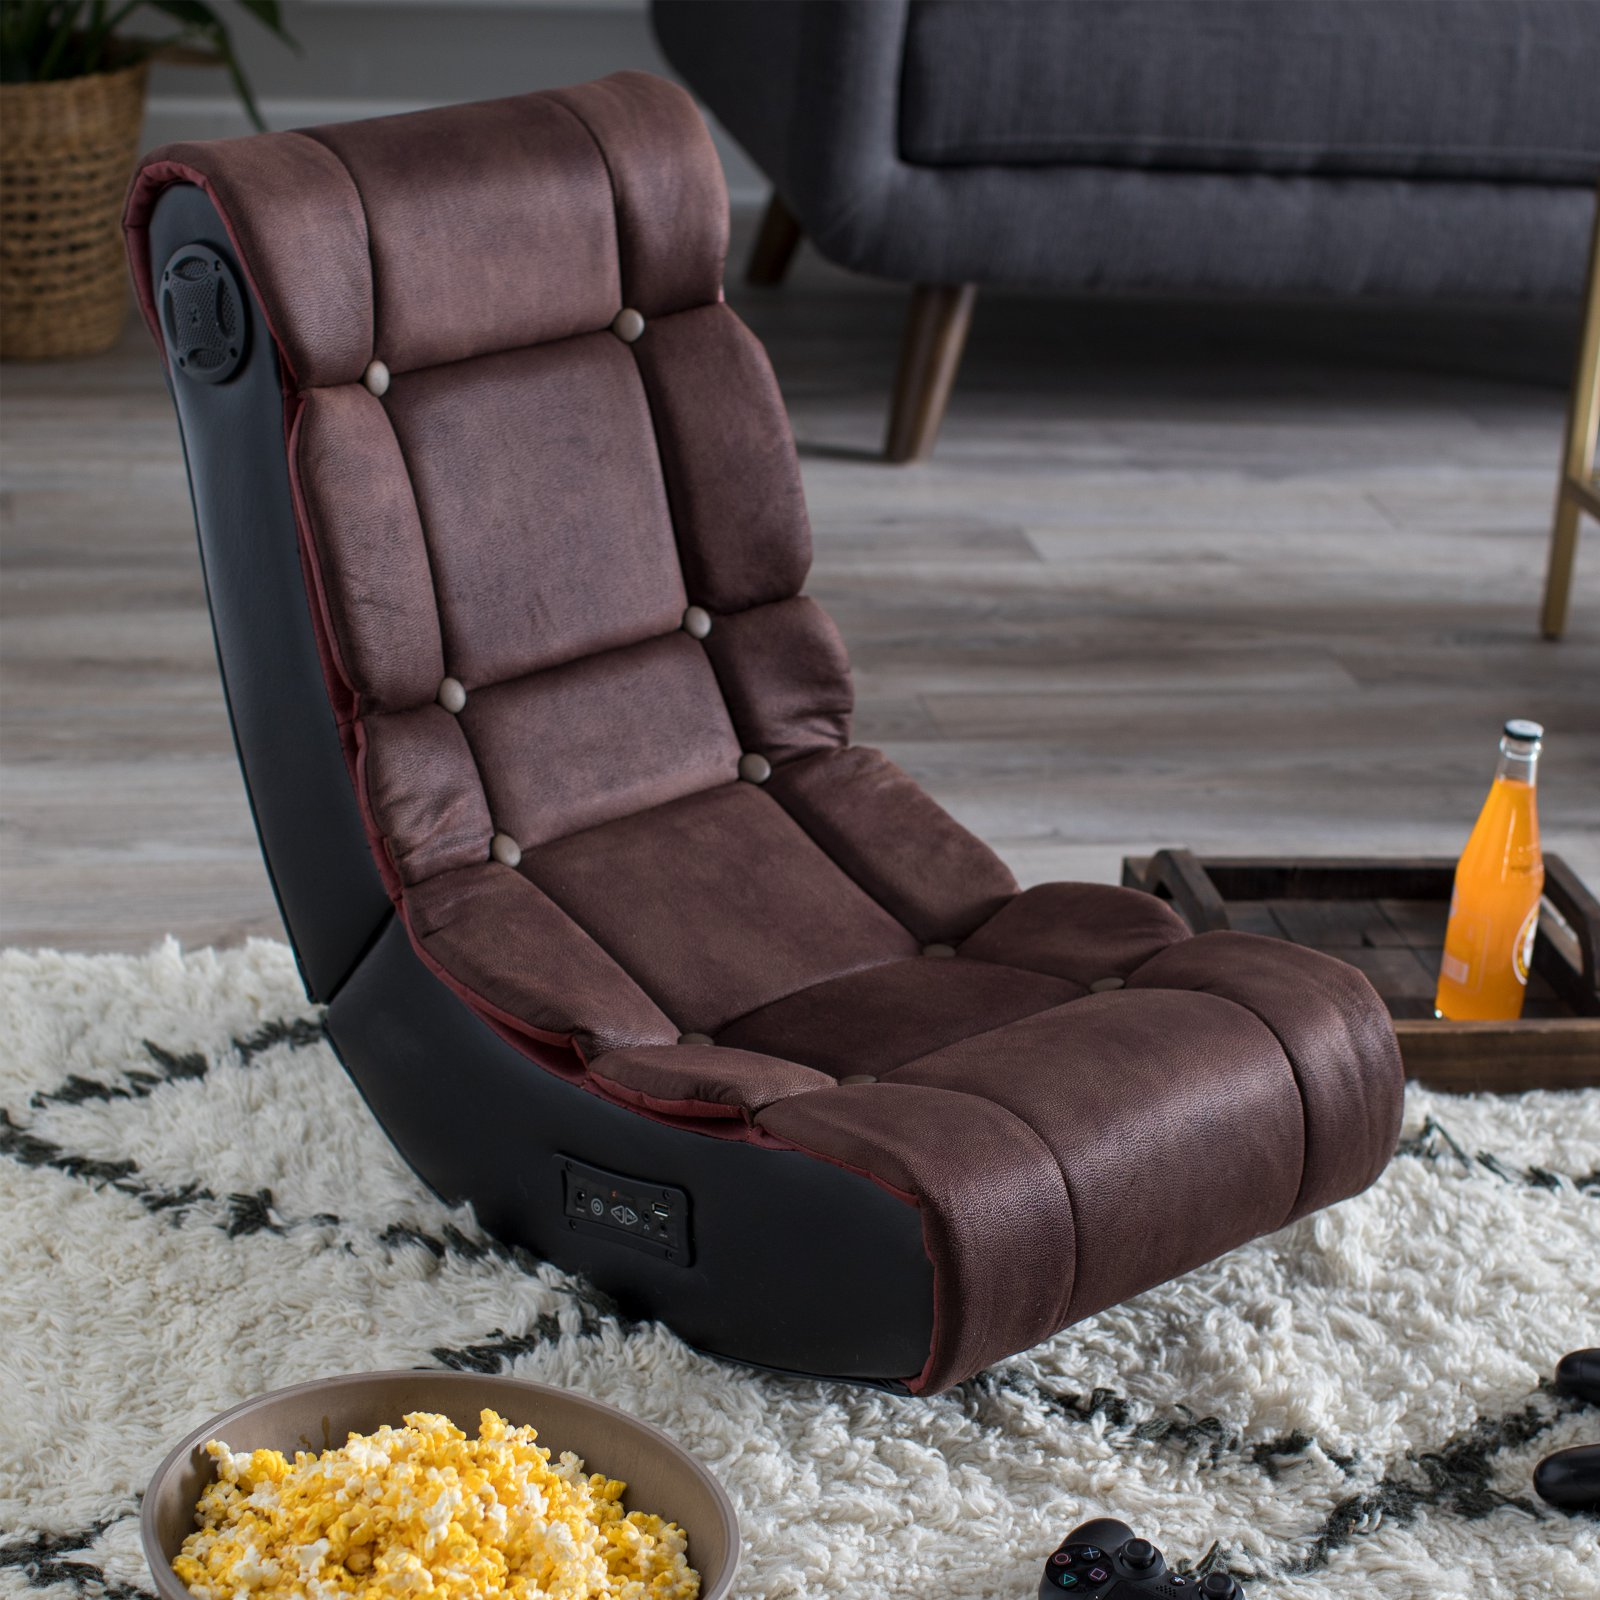 X-Rocker Crush 2.1 Wireless Audio Video Game Chair